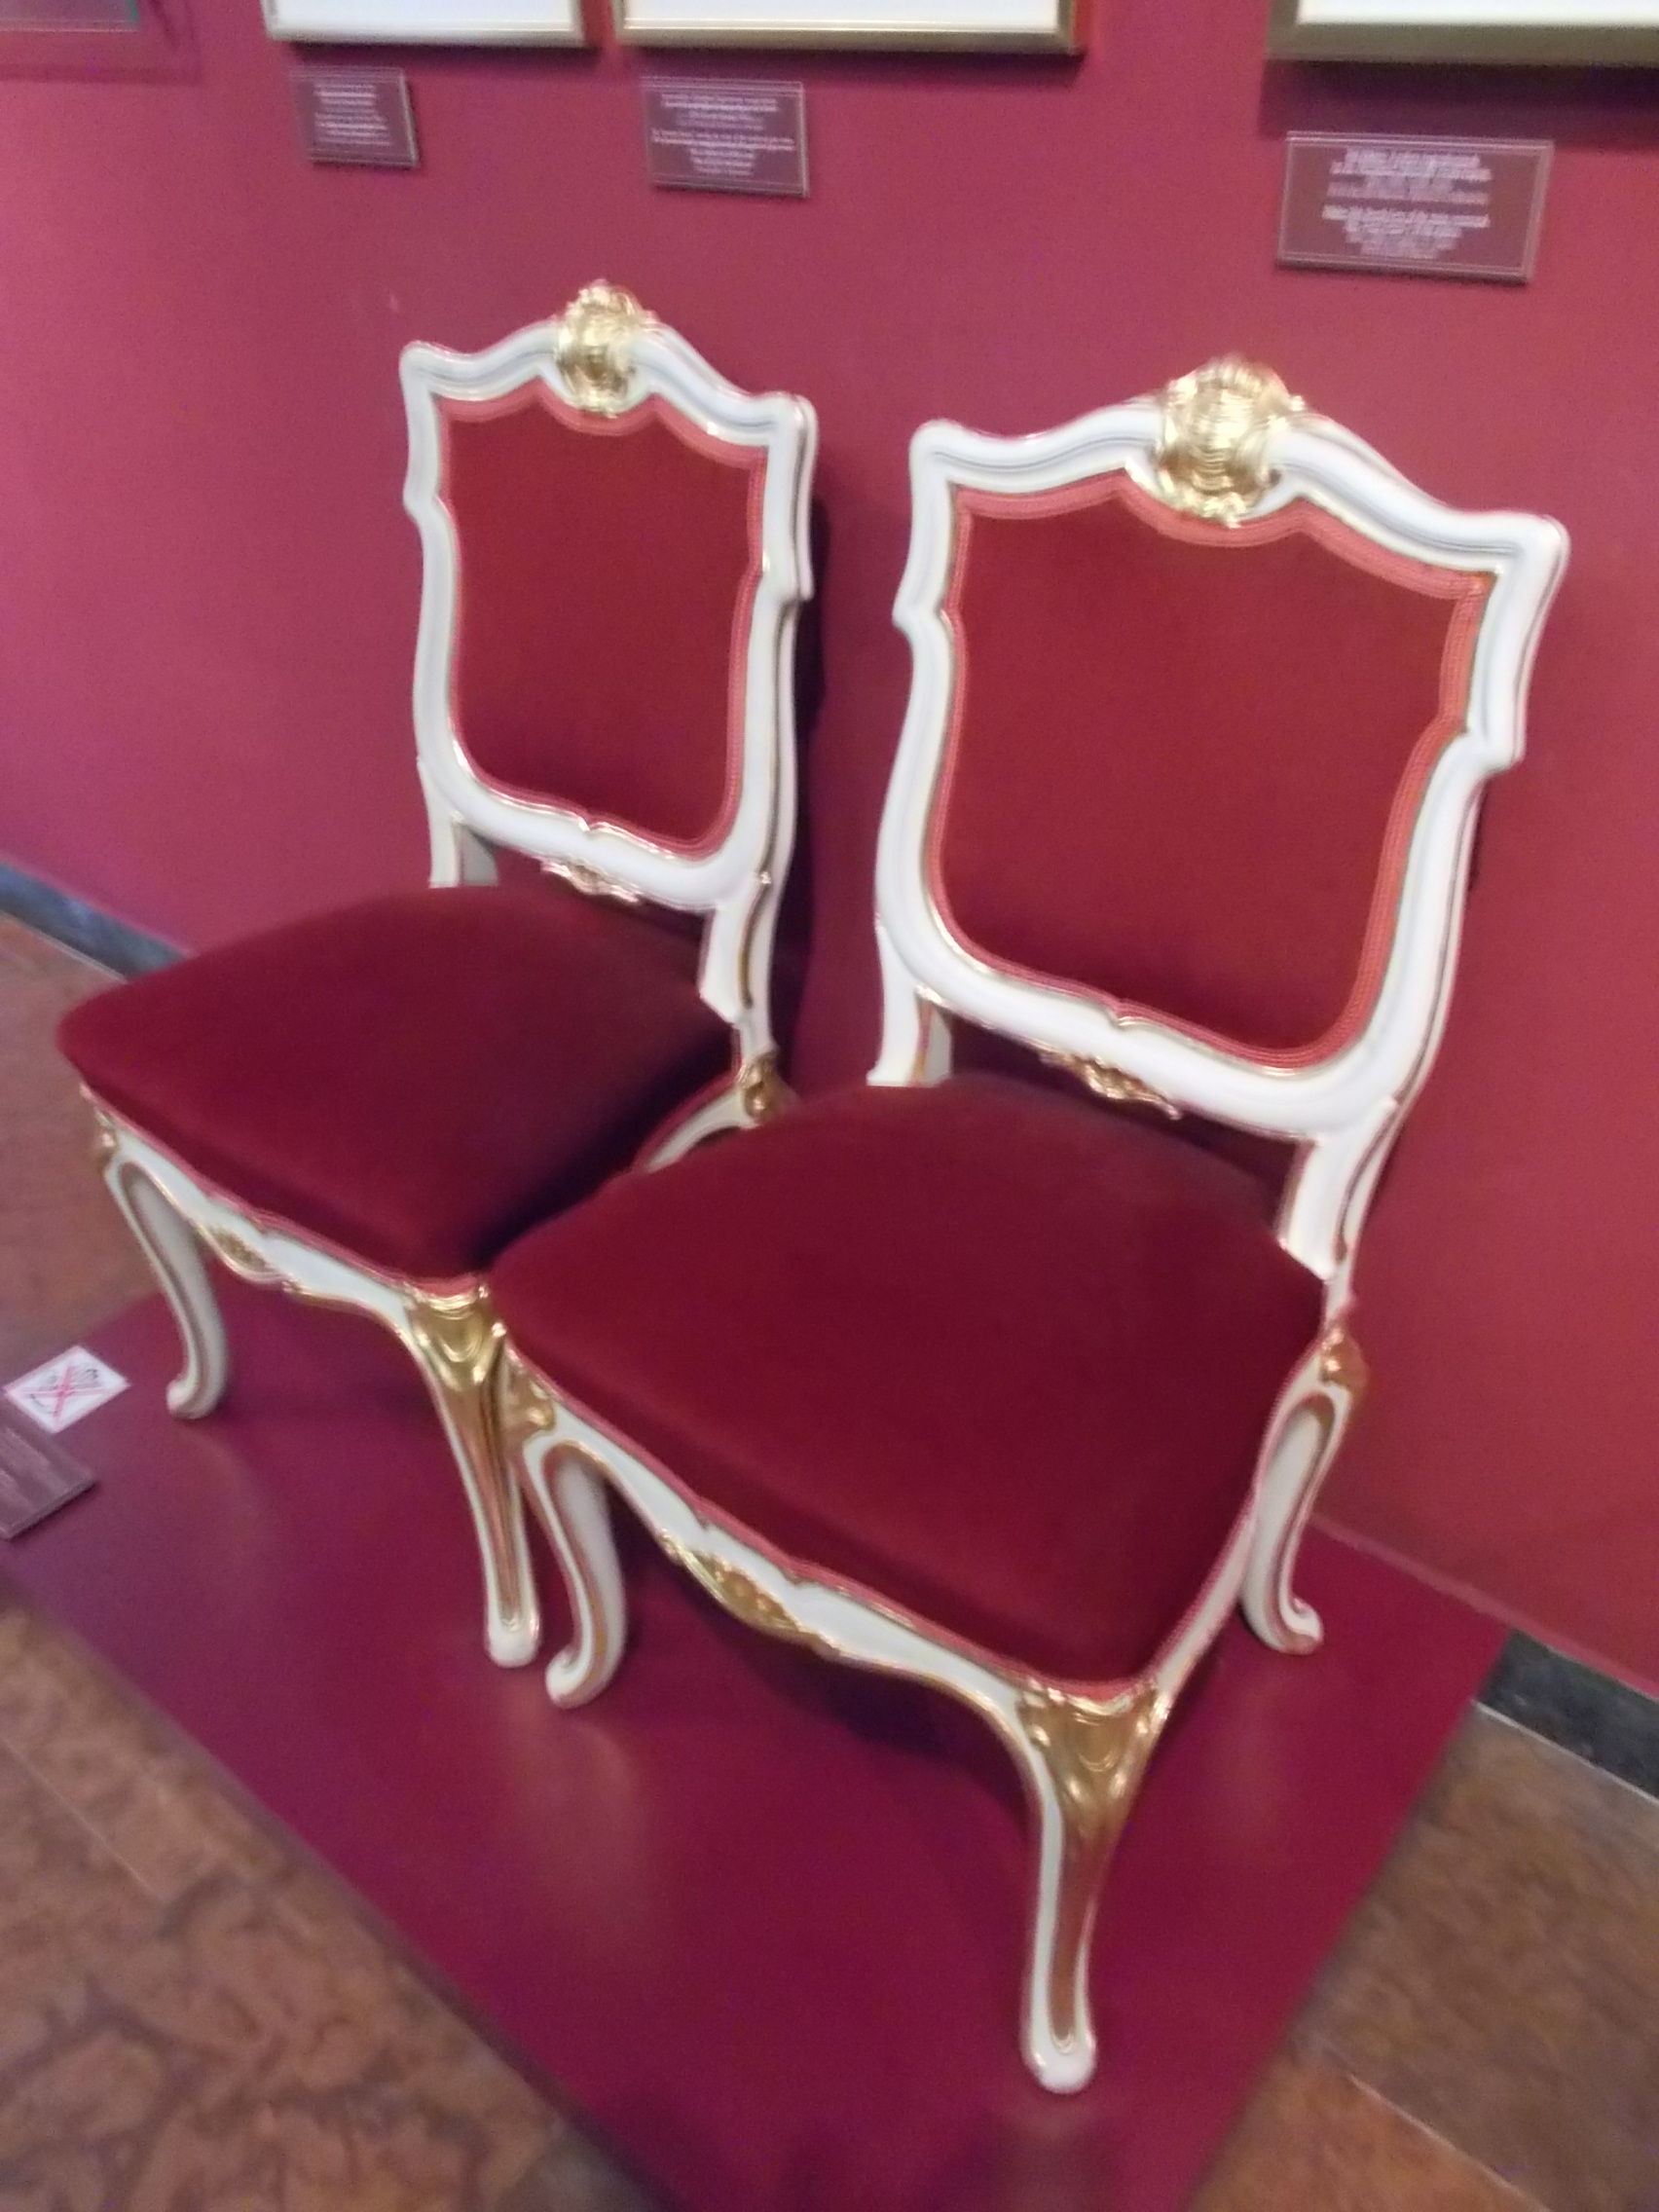 file:chair for king's dining room (1901), 2017 buda castle palace